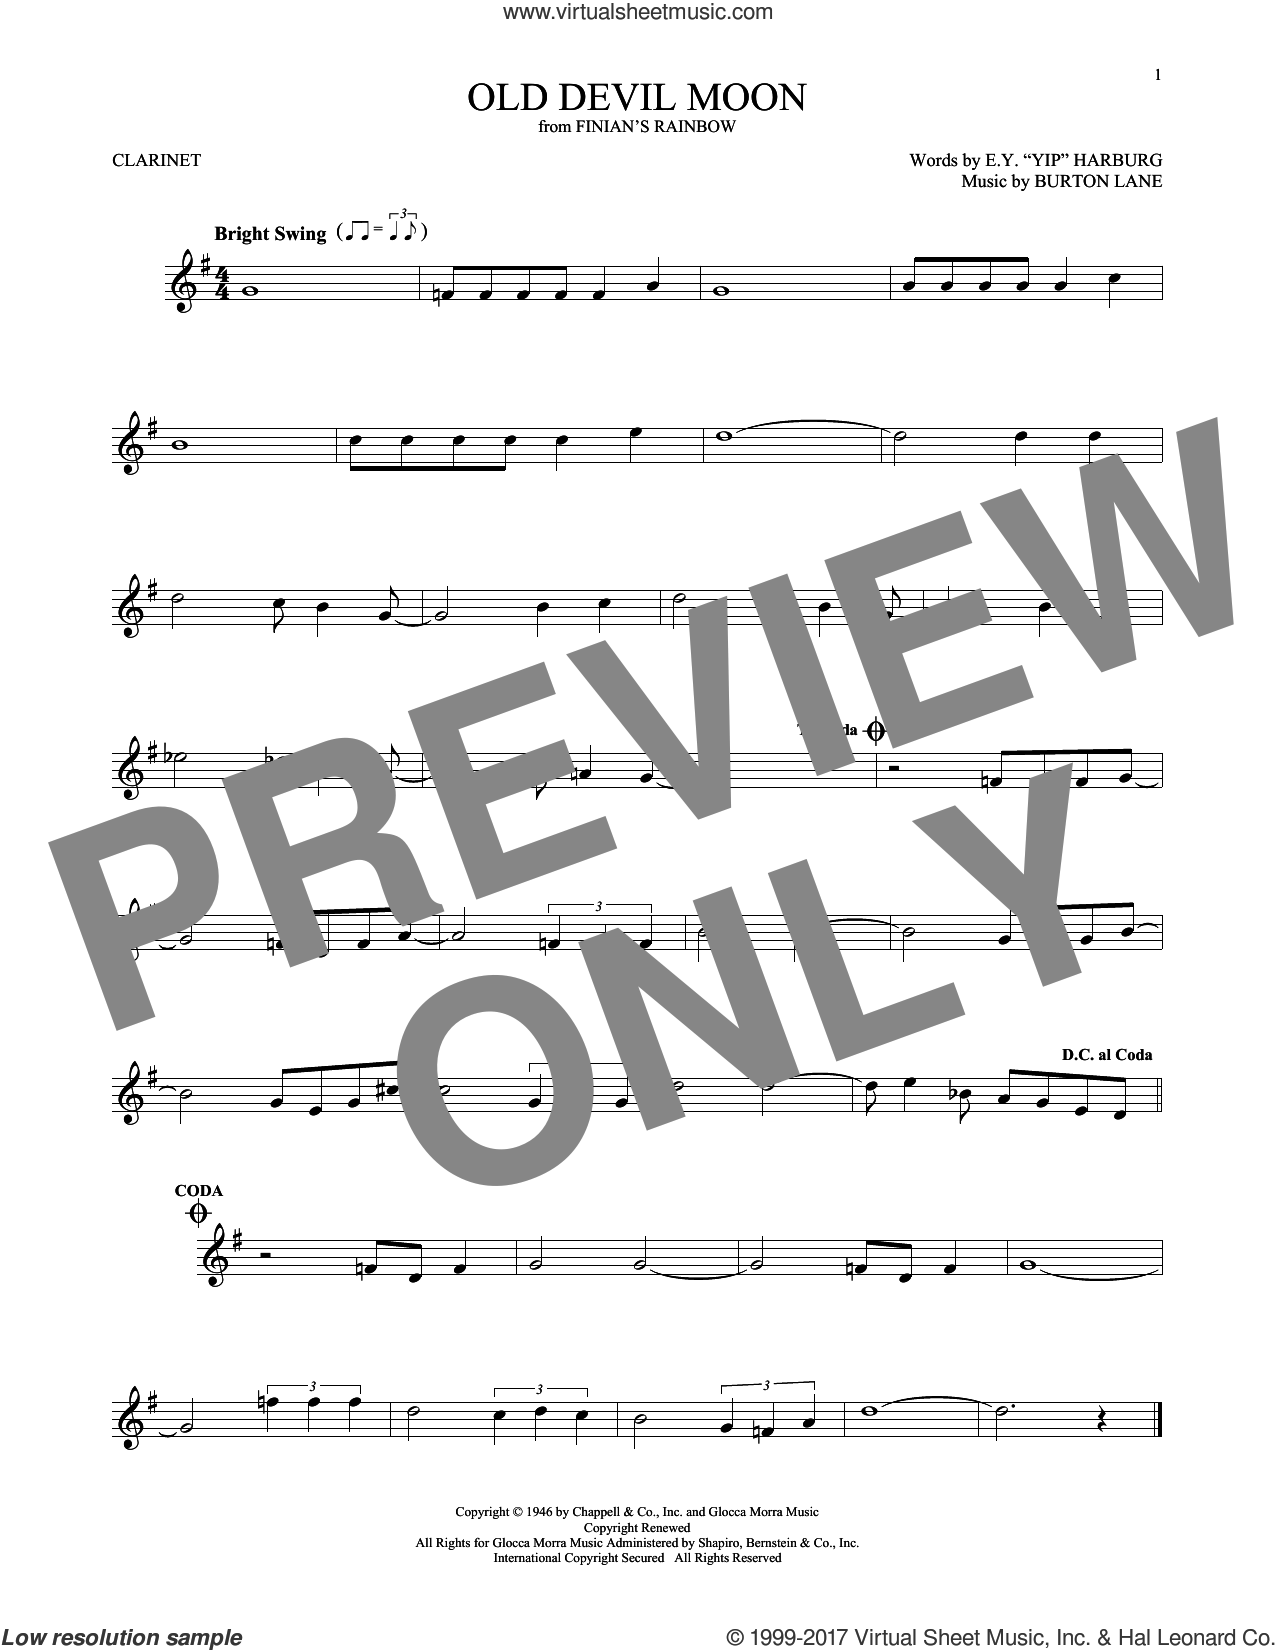 Old Devil Moon sheet music for clarinet solo by Frank Sinatra, Burton Lane and E.Y. Harburg, intermediate skill level